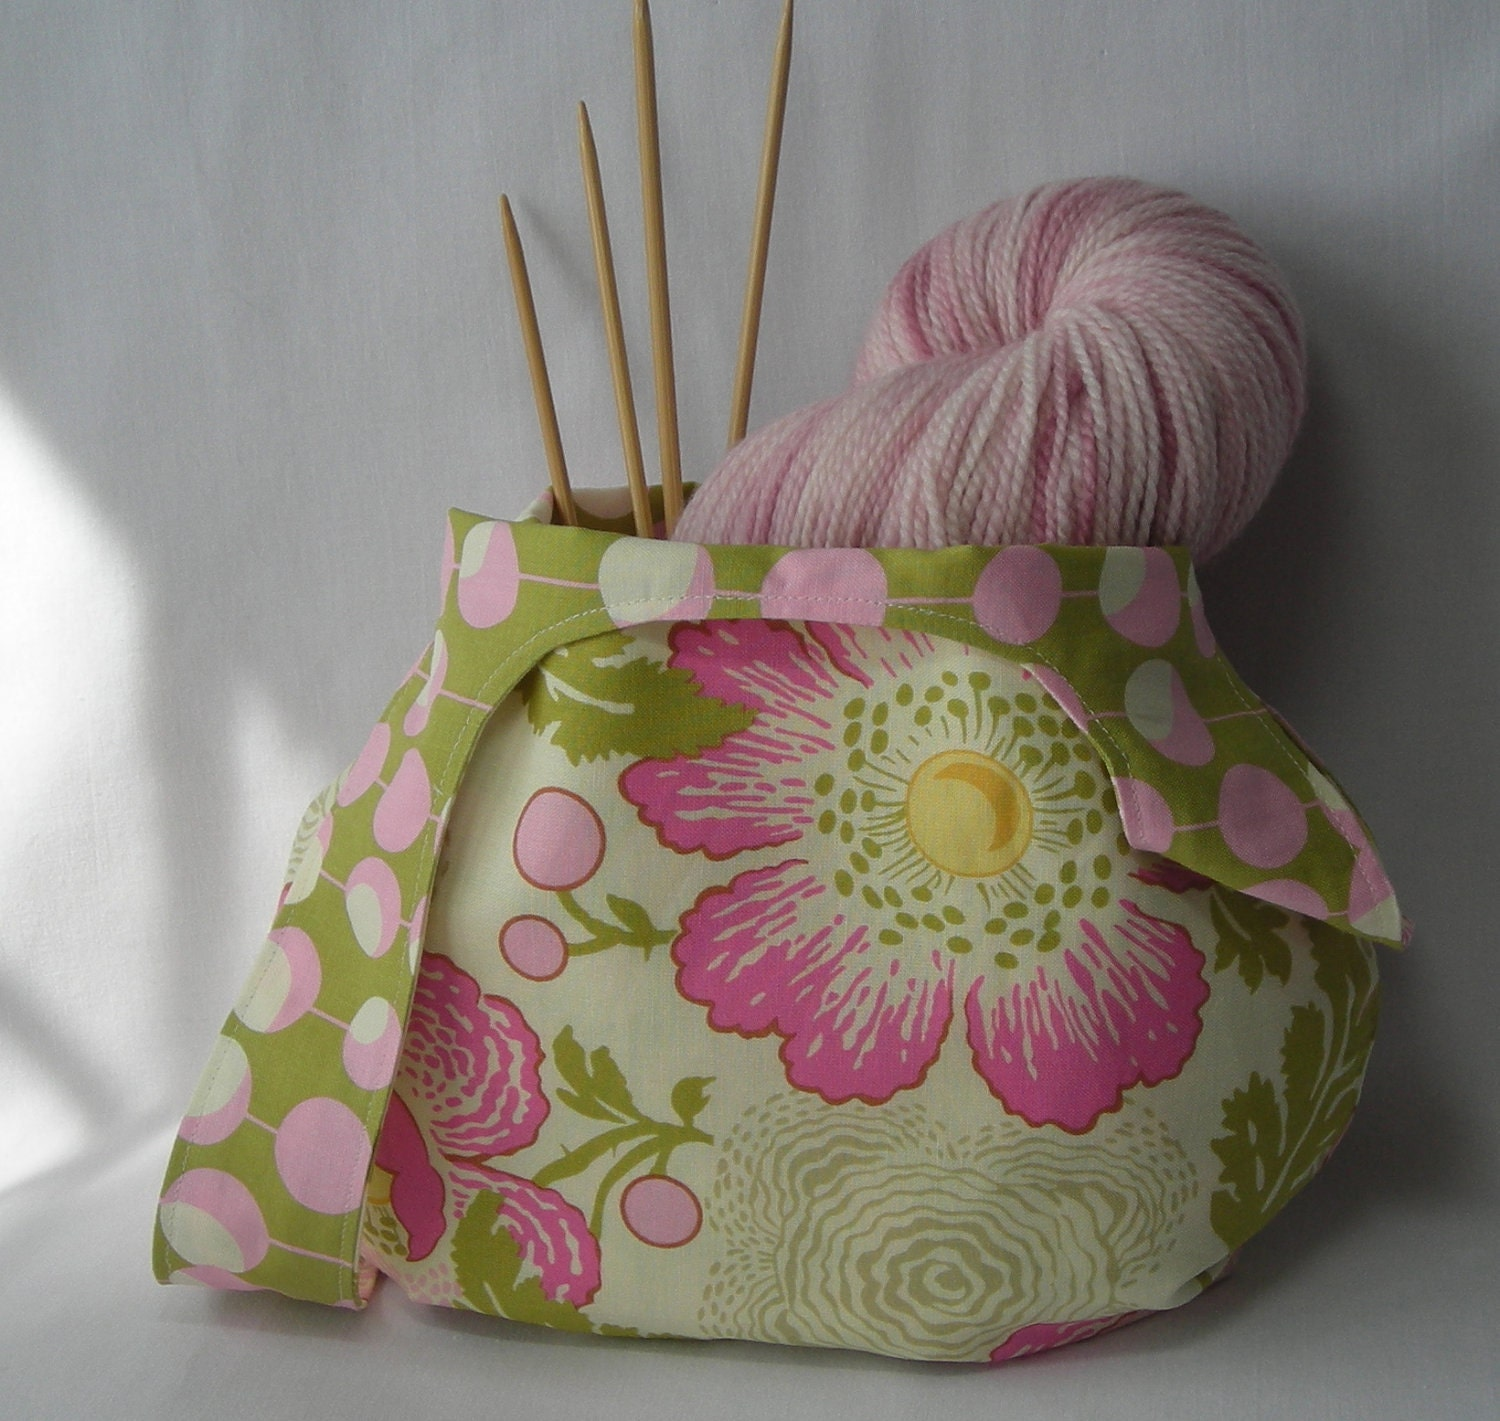 Crochet Japanese Knot Bag Pattern : japanese knot bag knitting project bag crochet project bag